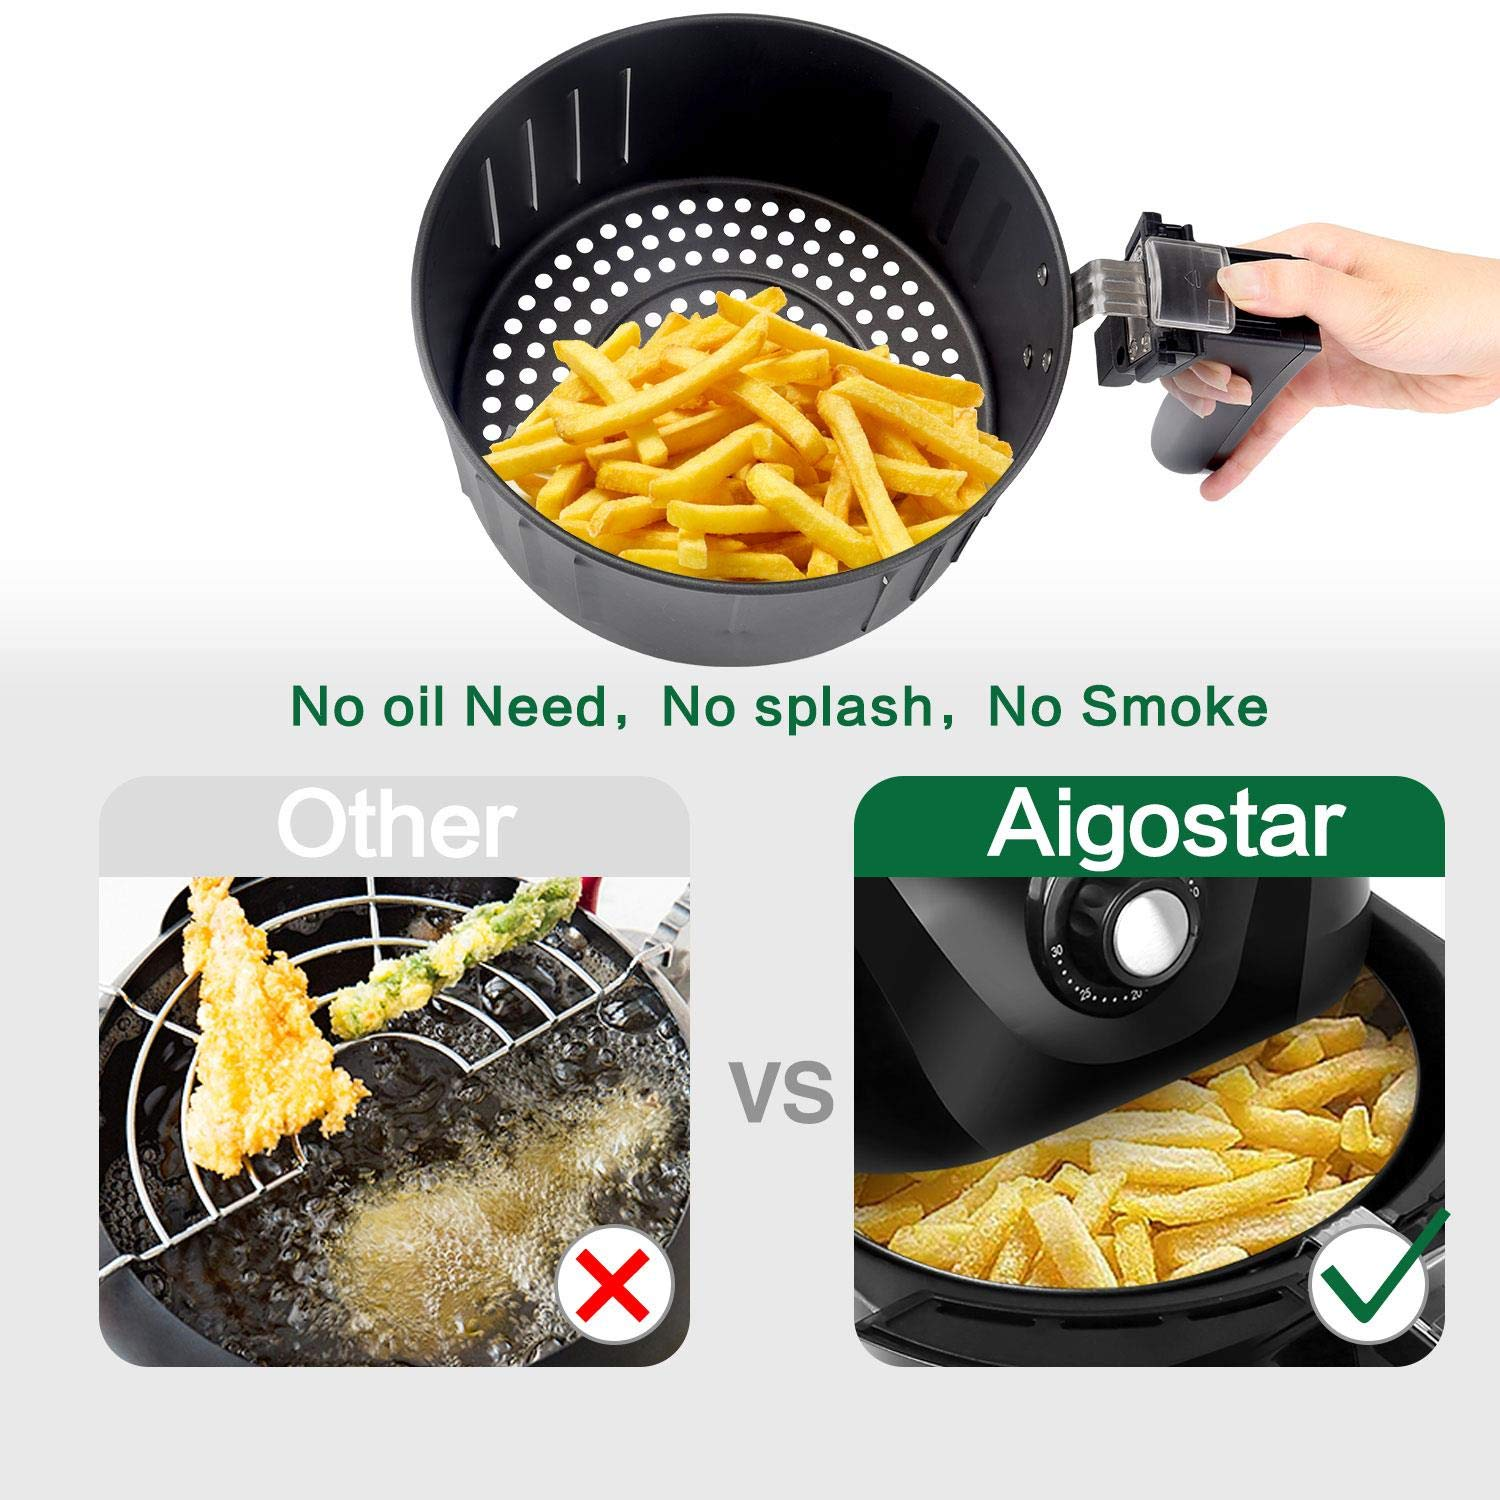 Aigostar Dragon Pro Air Fryer, 3.4Qt Electric Hot Air Fryers Oven Oilless Cooker with Detachable Non-stick Basket & Automatic Timer & Temperature Control for Fast Healthier Fried Food, 1400W by Aigostar (Image #5)